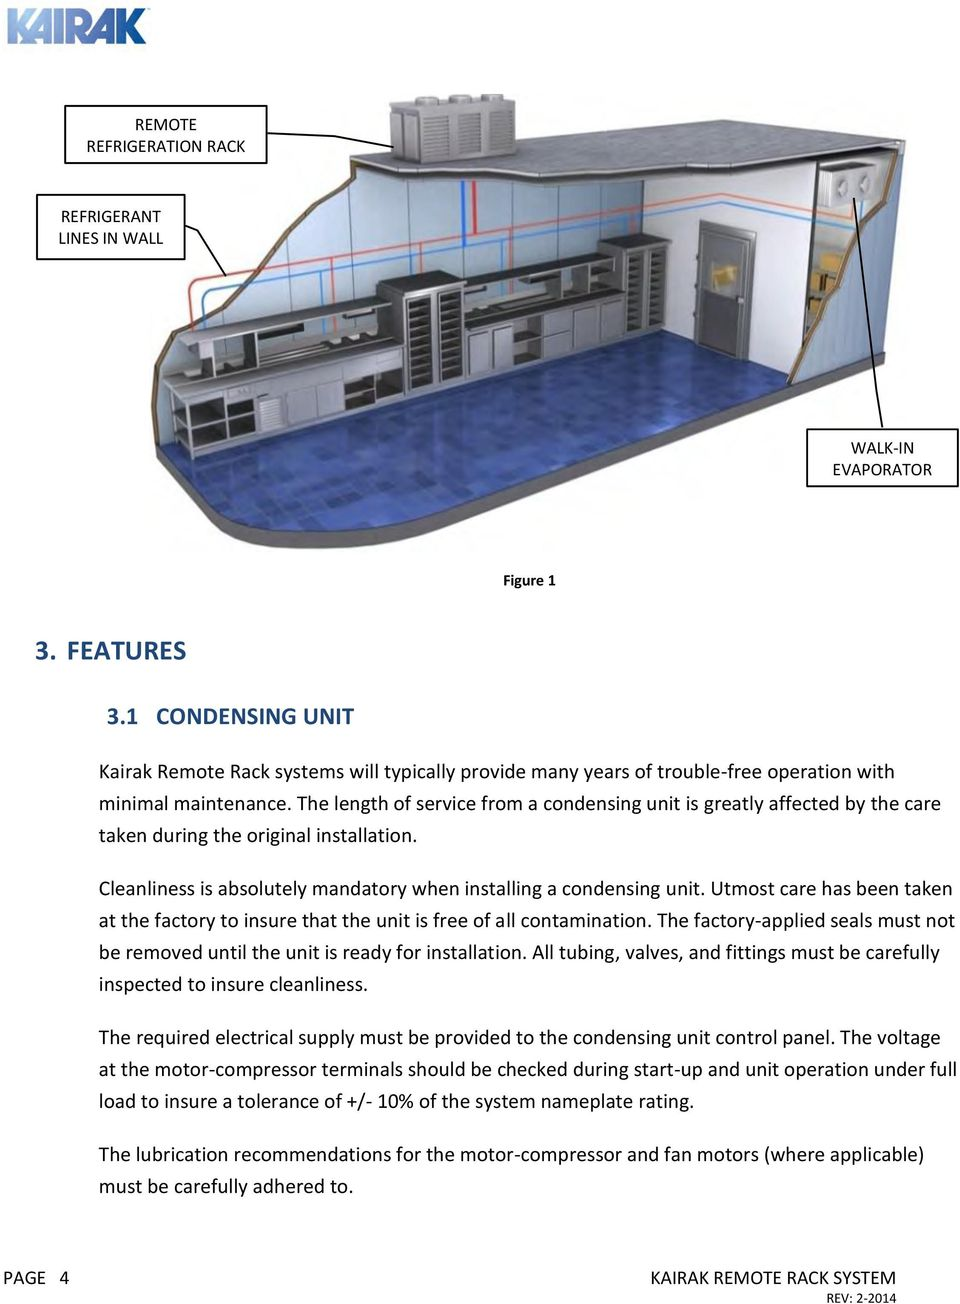 Remote Rack System Owners Manual Installation Operations Condensing Unit And Refrigeration The Length Of Service From A Is Greatly Affected By Care Taken During